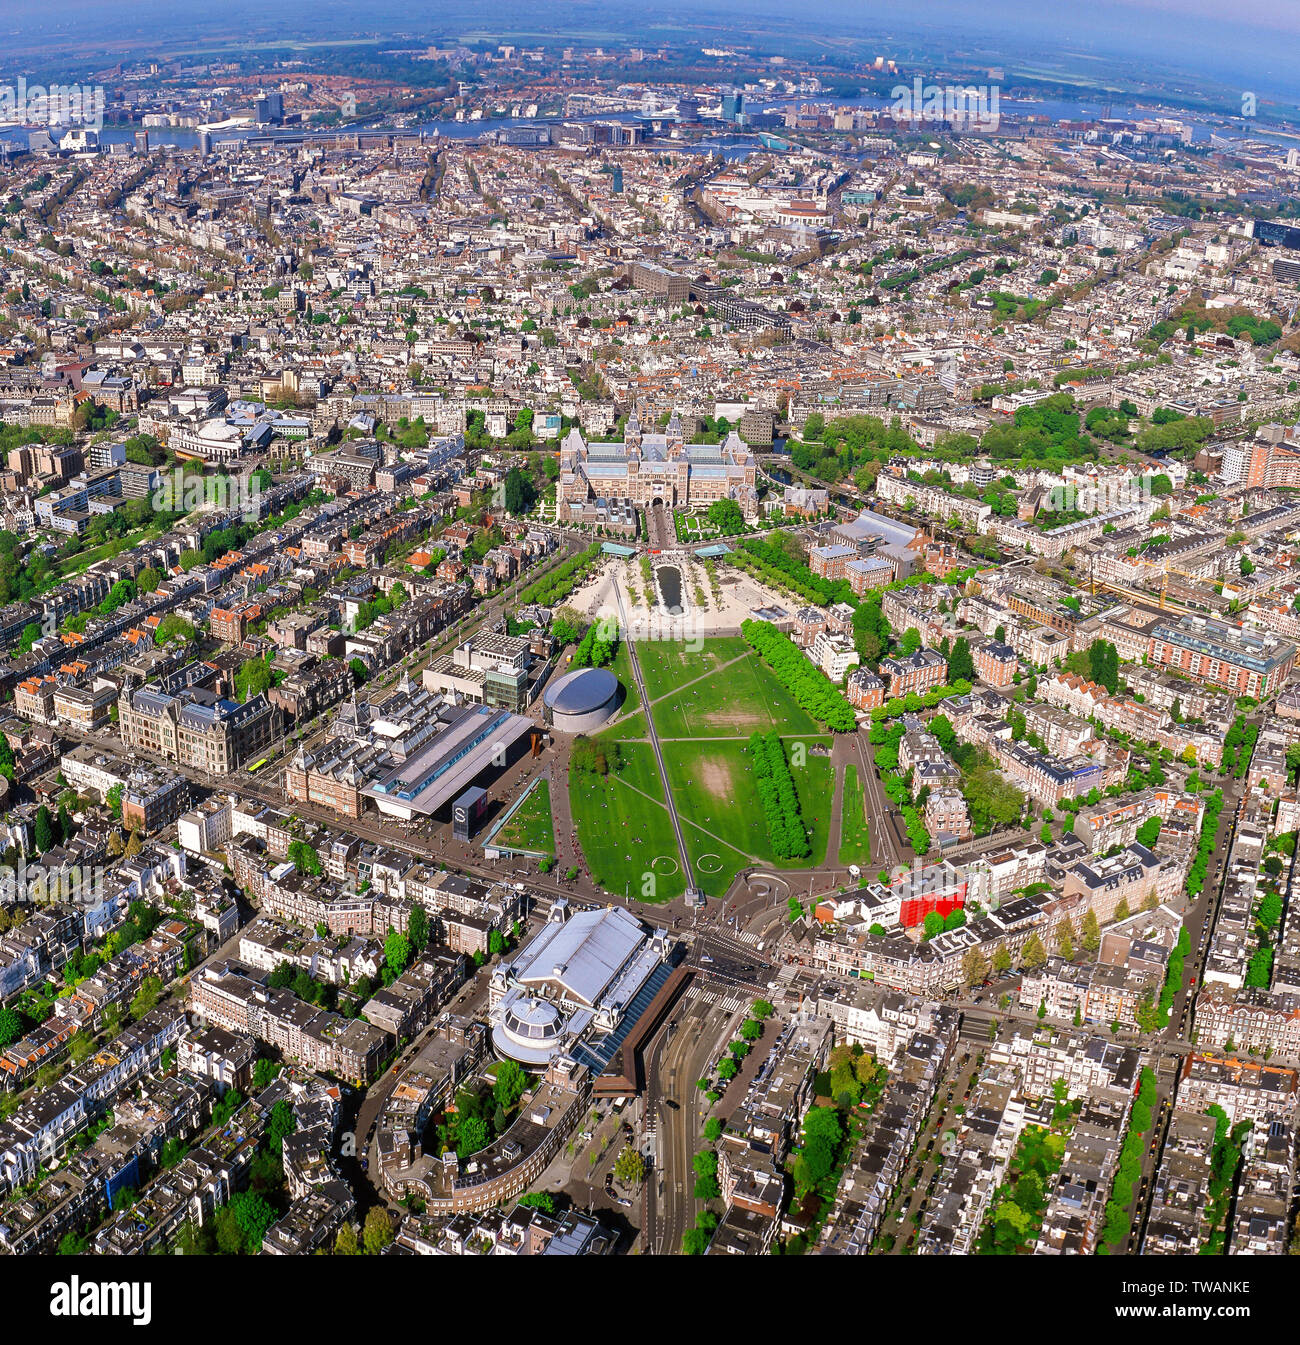 Panorama Aerial of the innercity of Amsterdam with the Rijksmuseum and Concert Building, the Netherlands - Stock Image